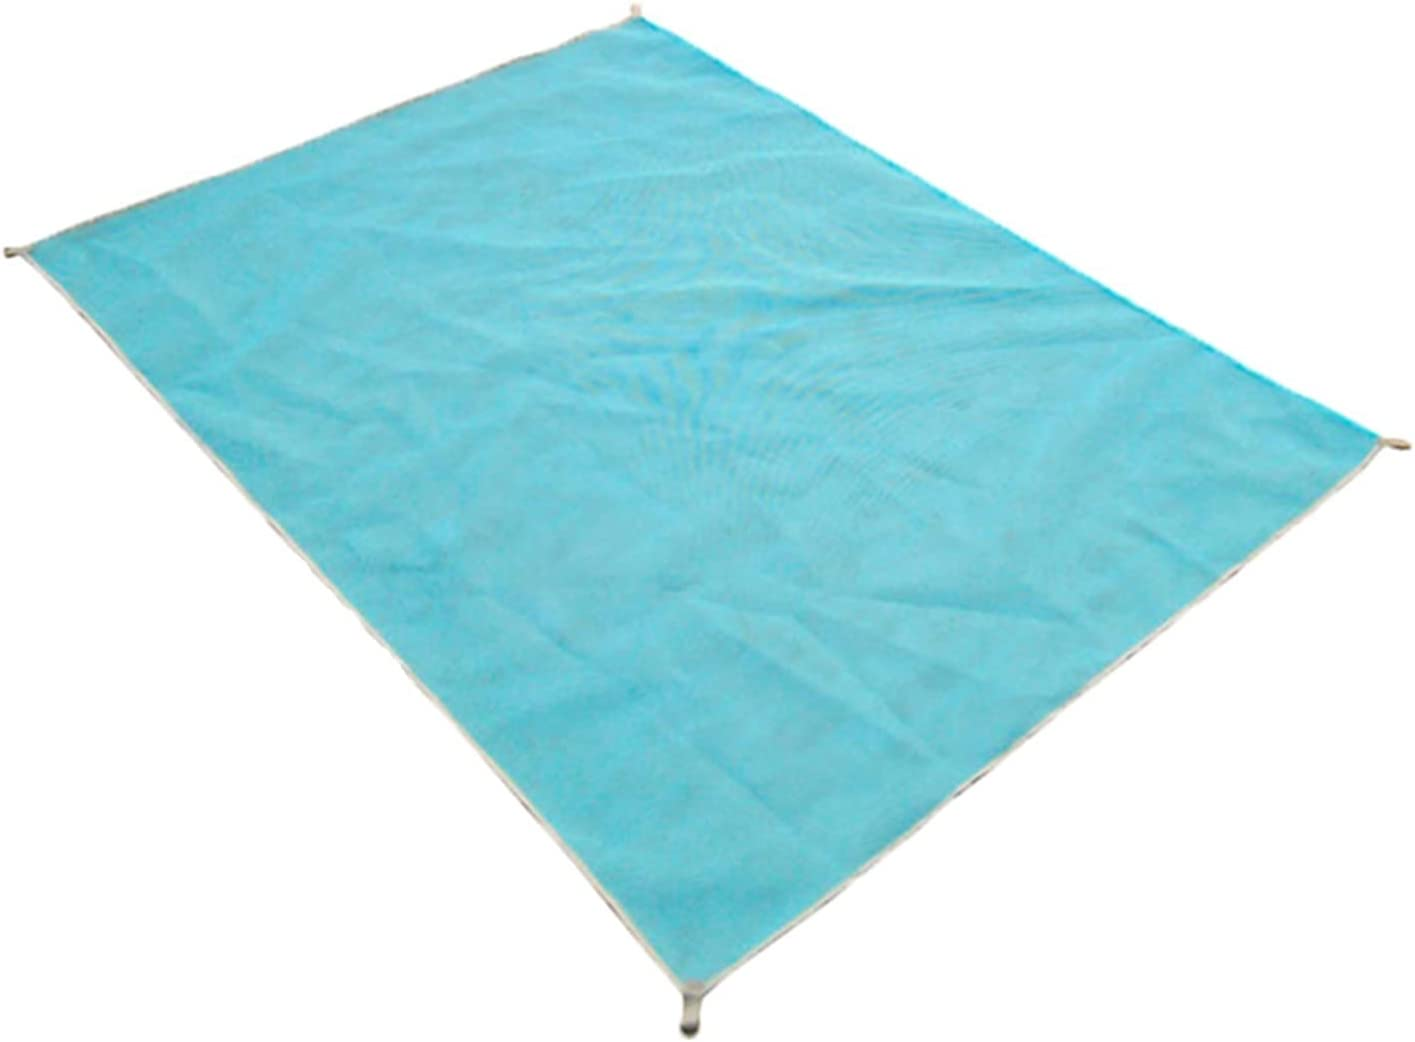 AQHXLS Leaky Sand Super Special SALE held Philadelphia Mall Beach Mat Grass Picnic Waterproof Ultra-Thin